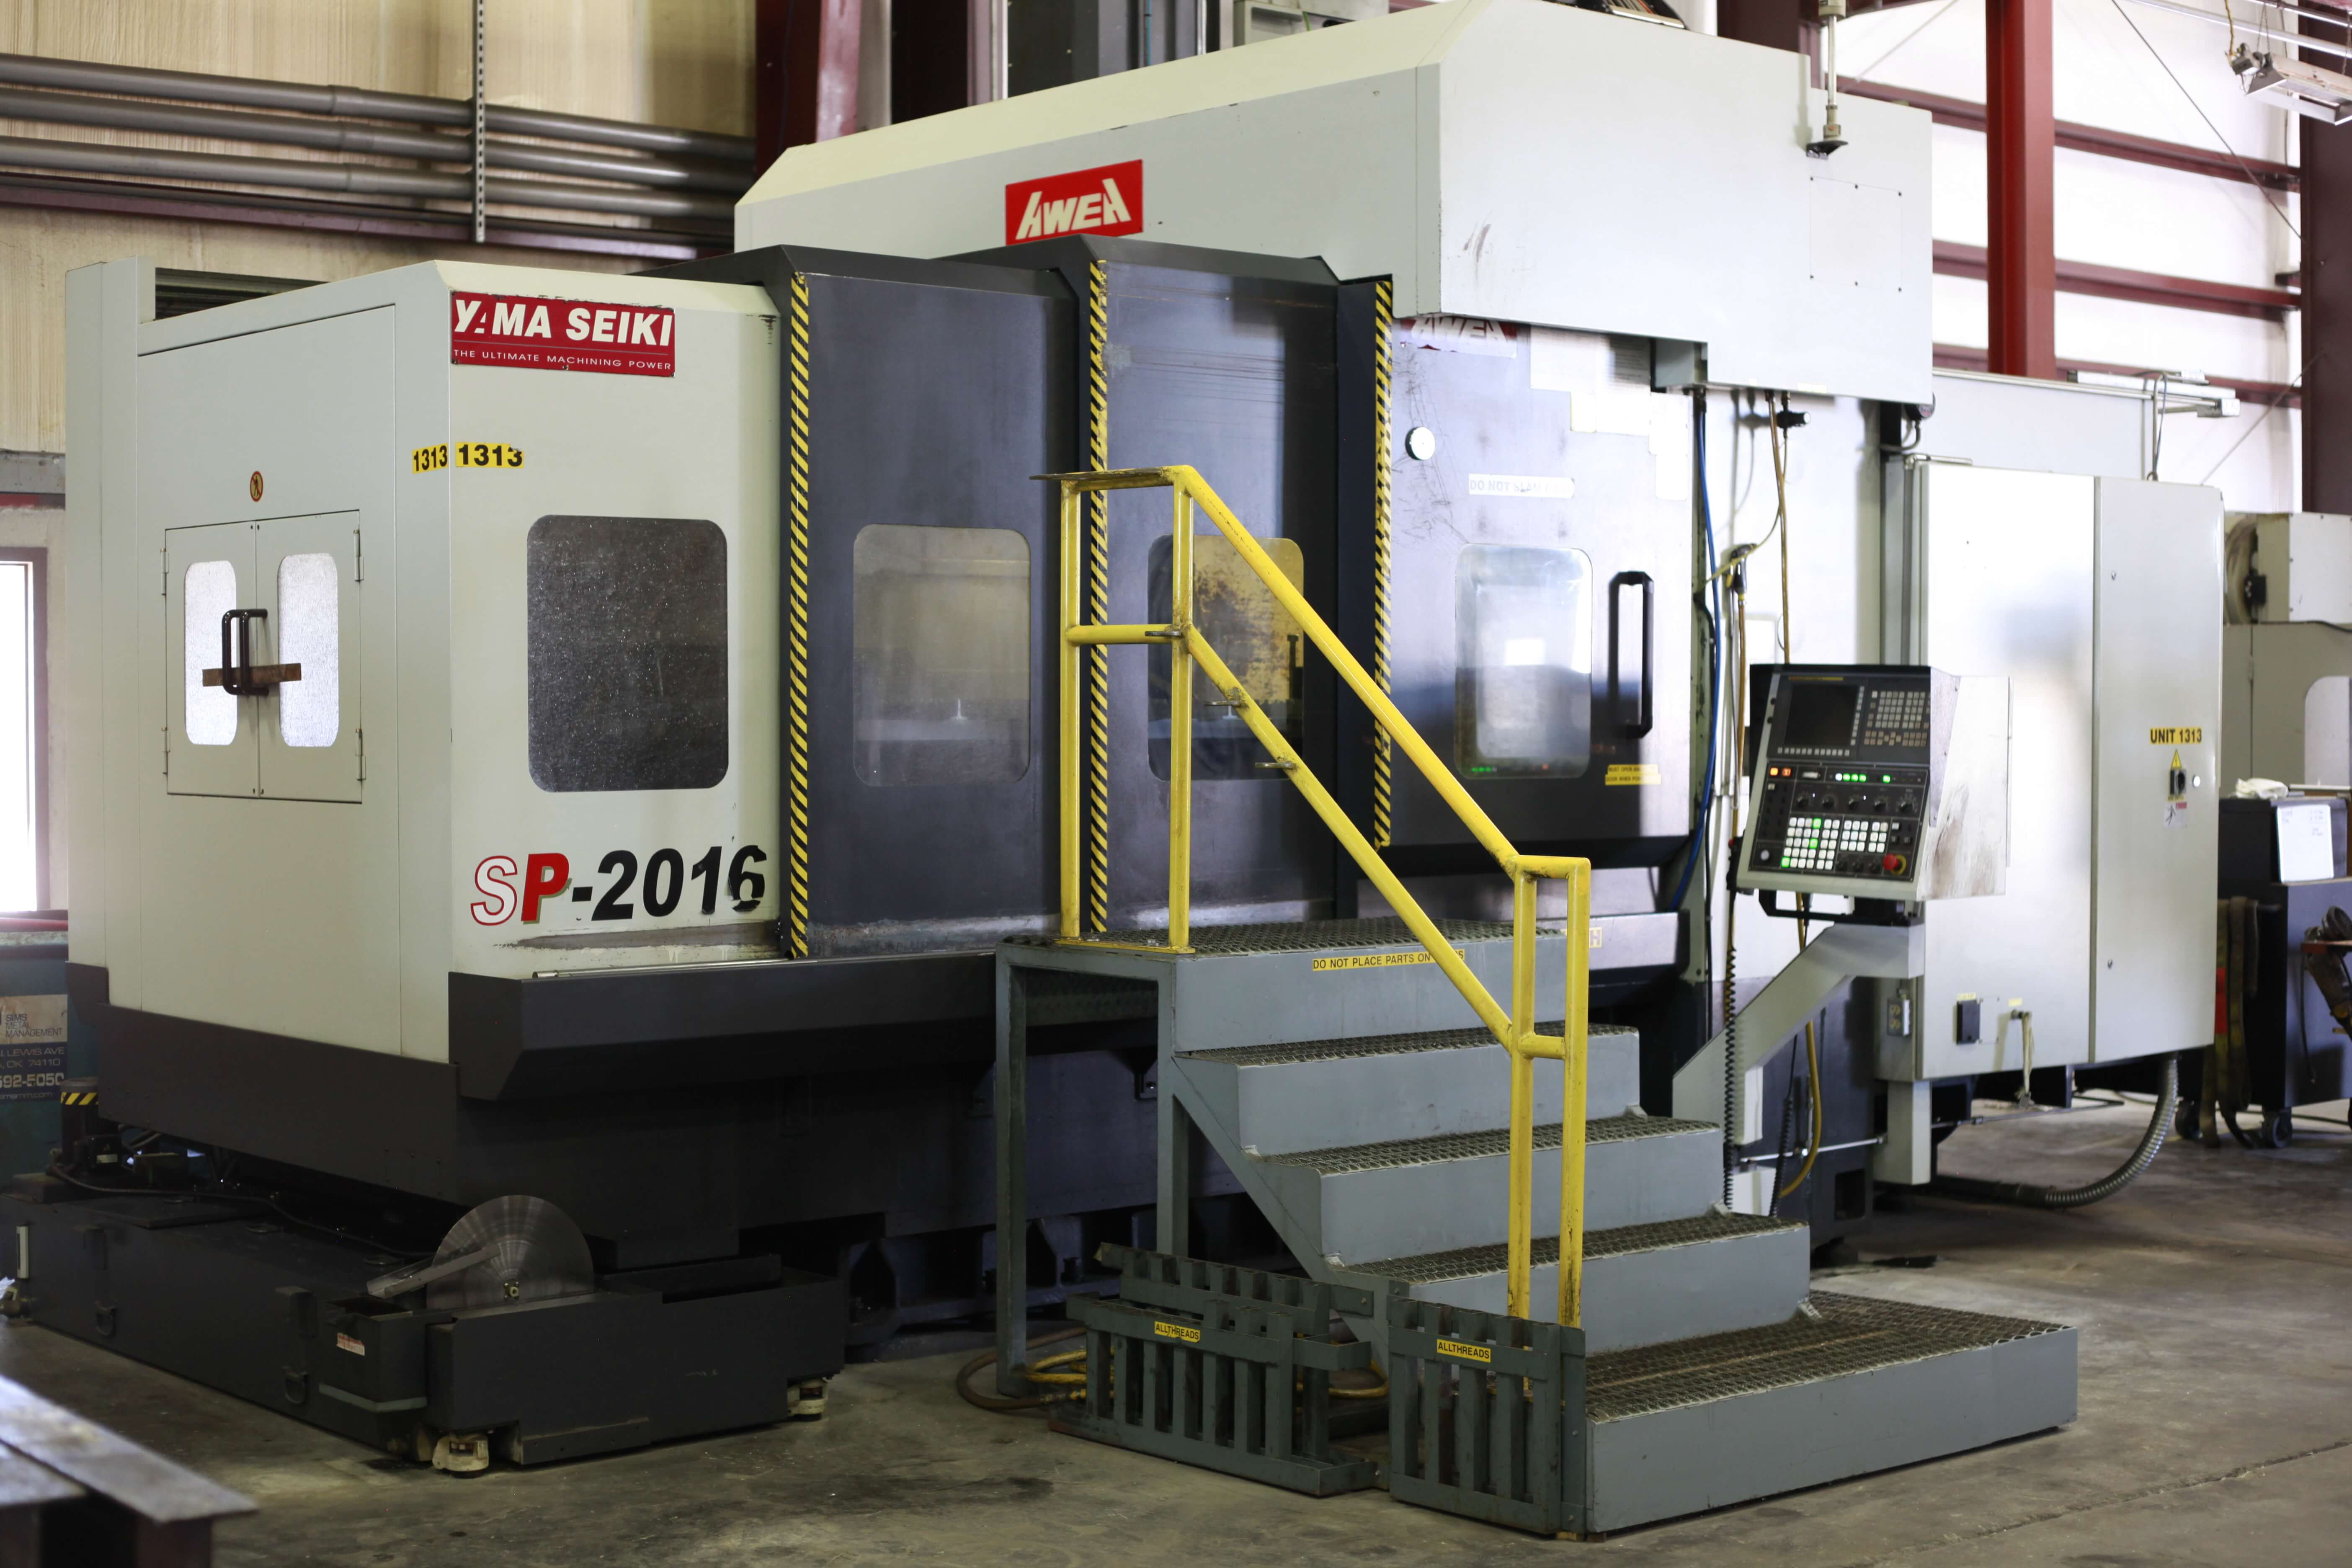 AWEA SP-2016 Vertical Machining Center